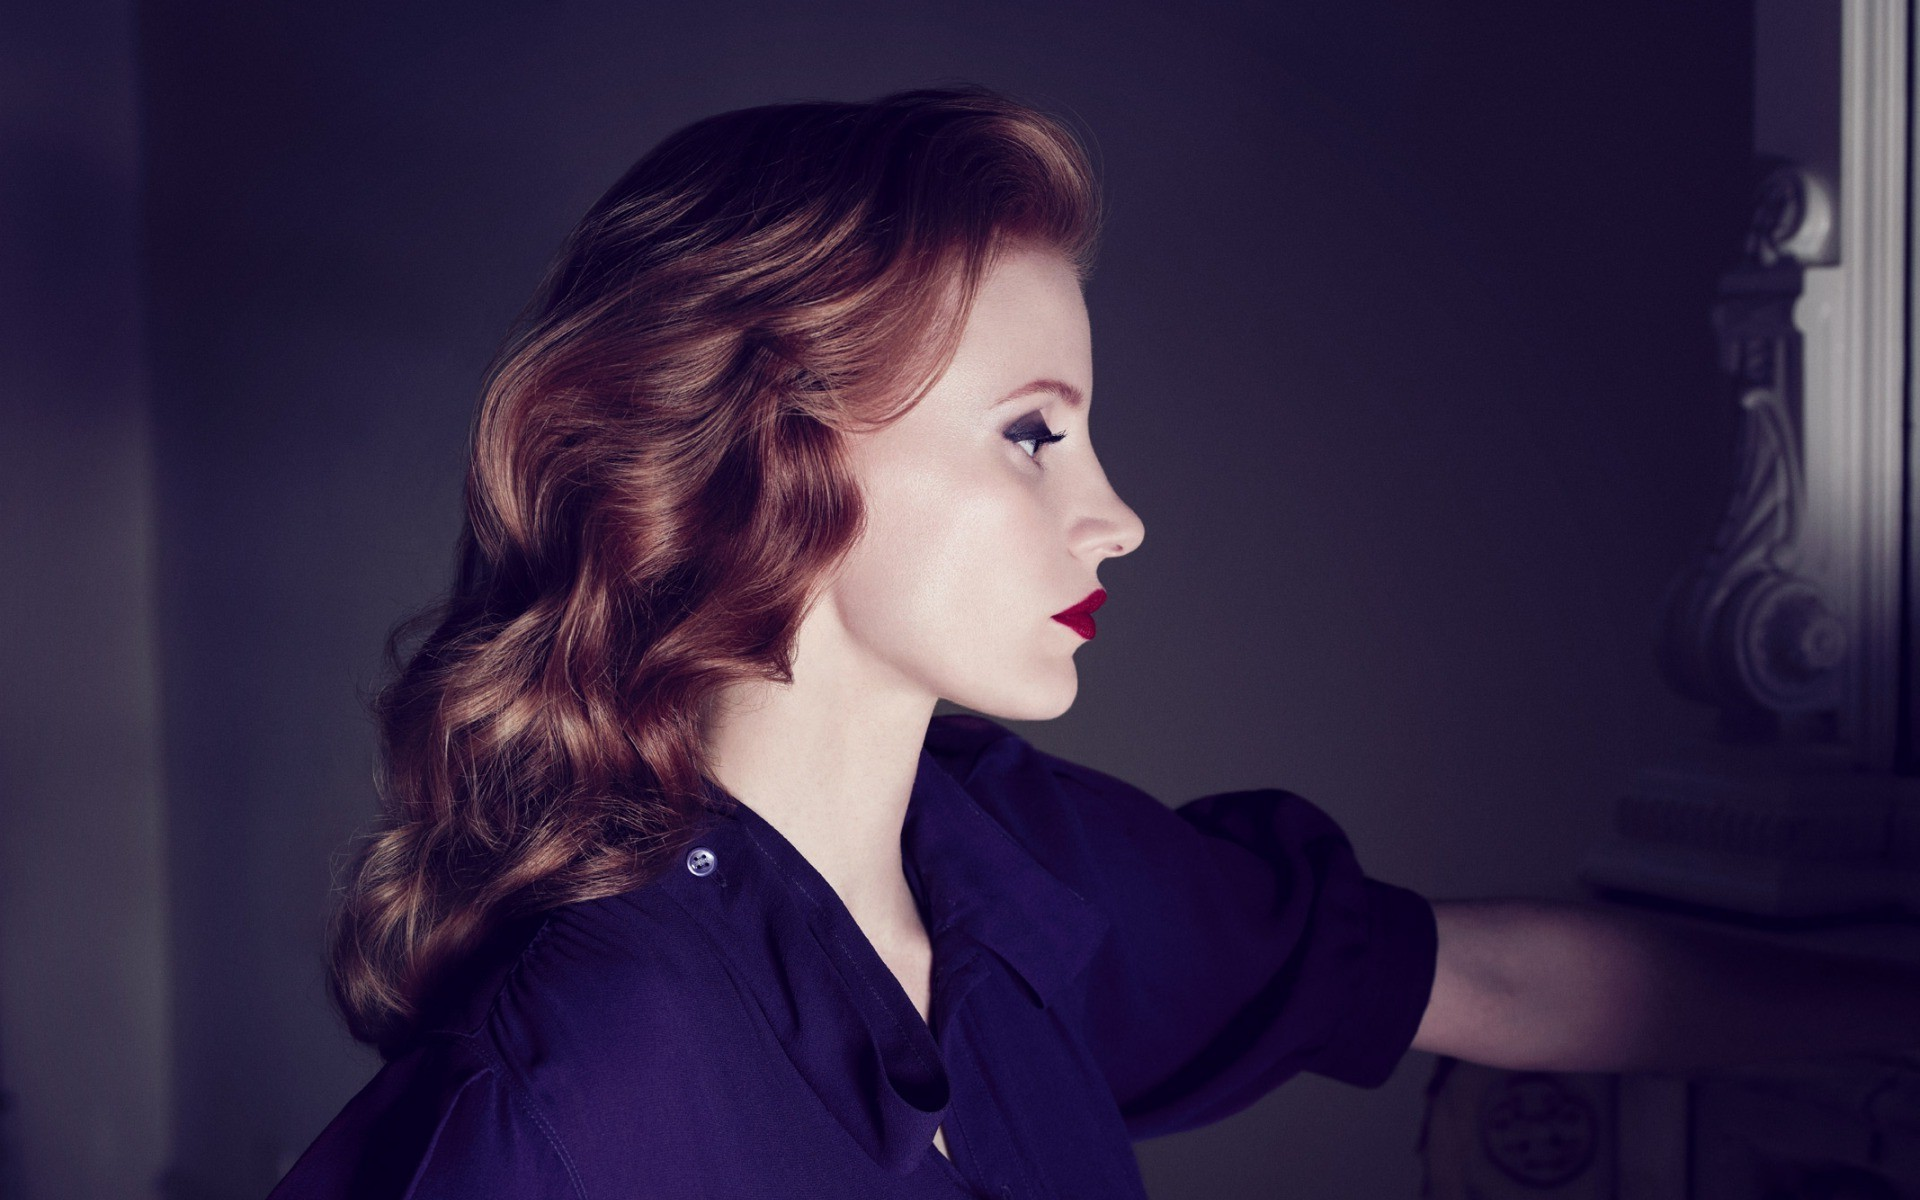 1920x1200 - Jessica Chastain Wallpapers 24